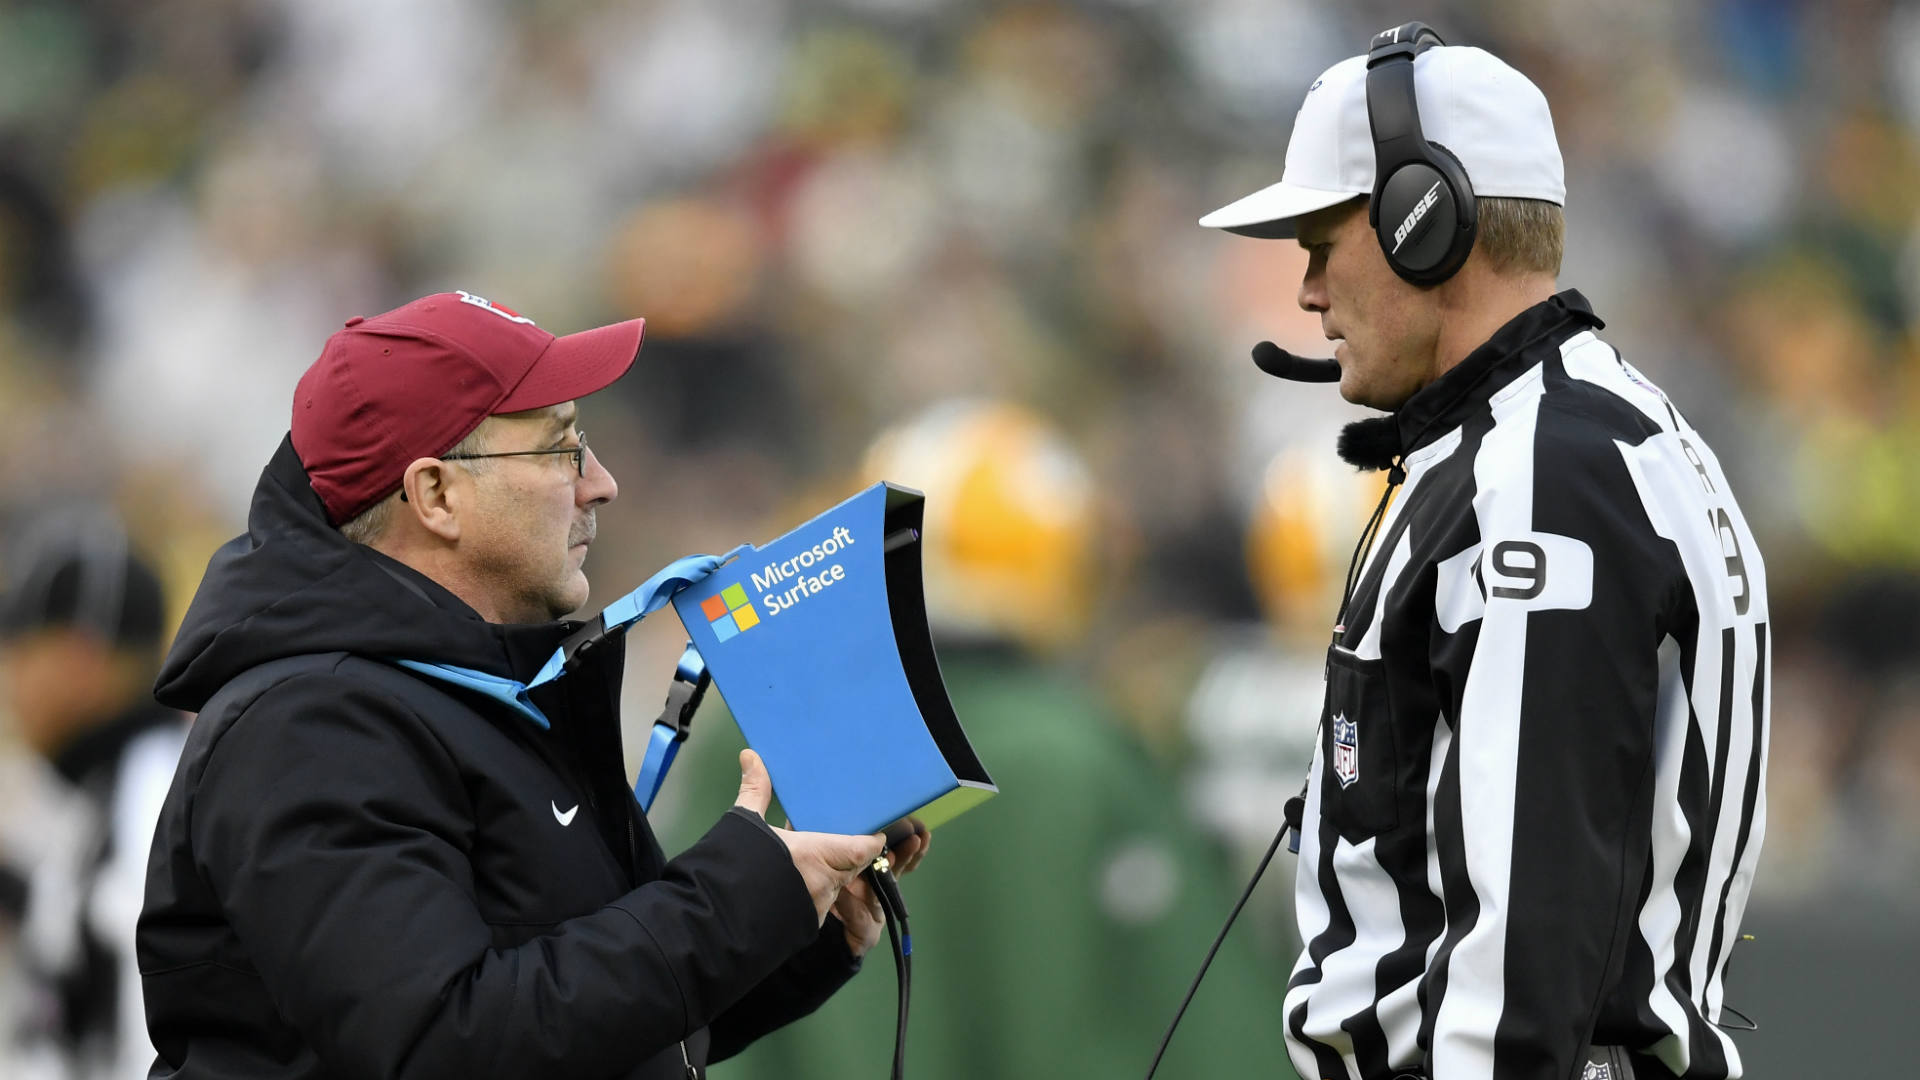 NFL officiating chiefs were the ones who 'failed miserably' on pass interference replay review